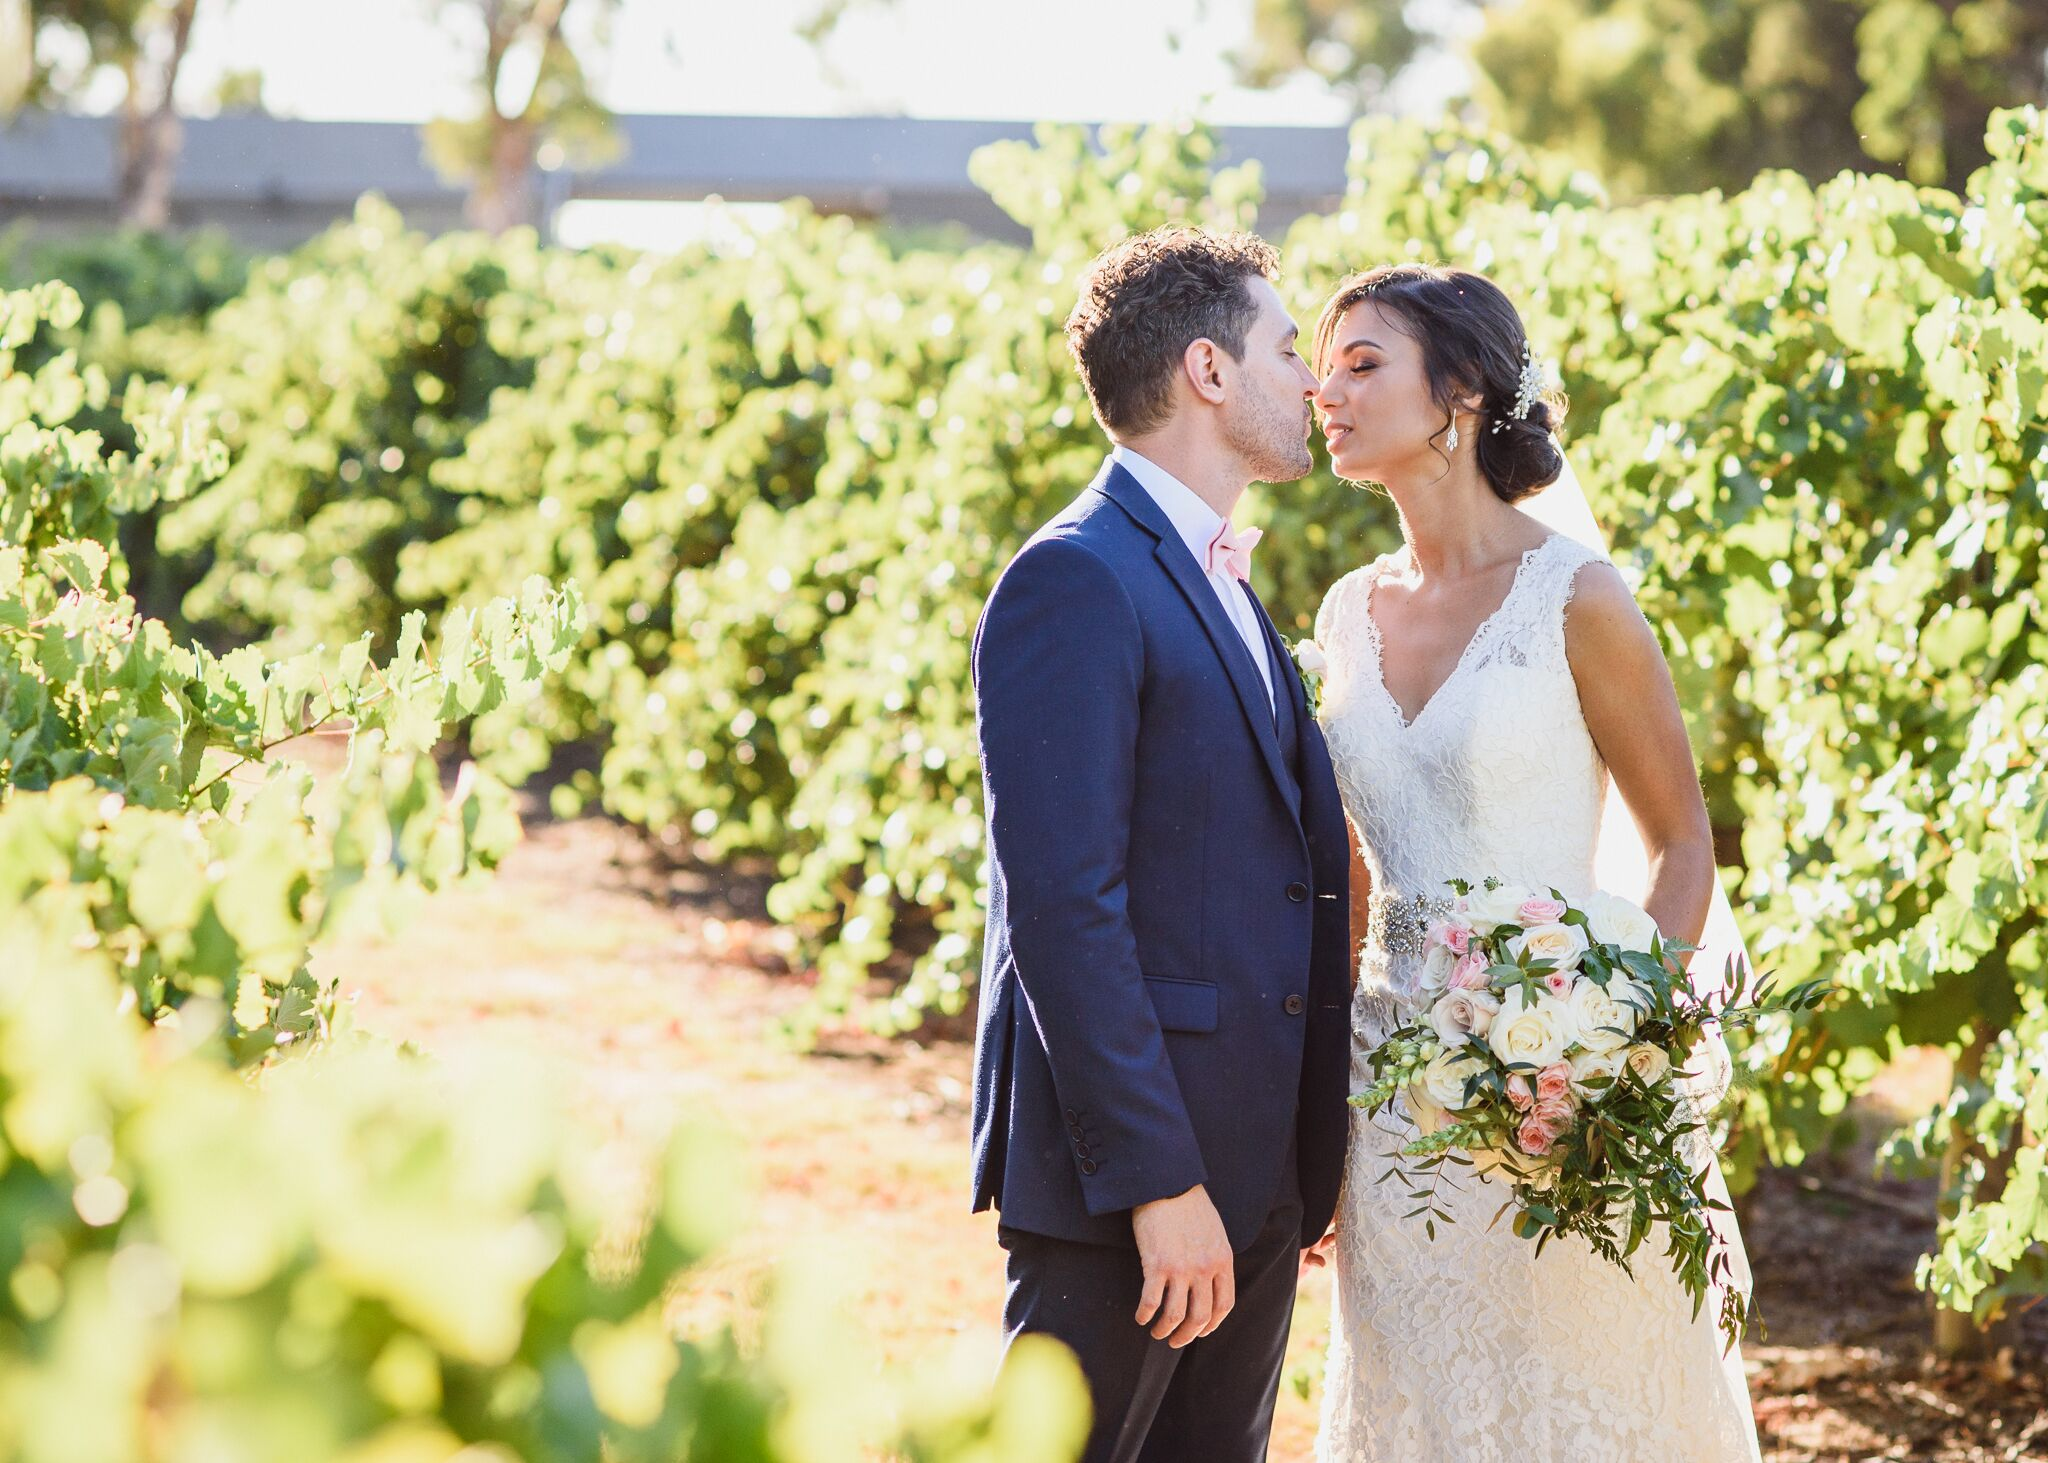 Sweet Floral Wedding Flowers And Bouquets Perth Weddings